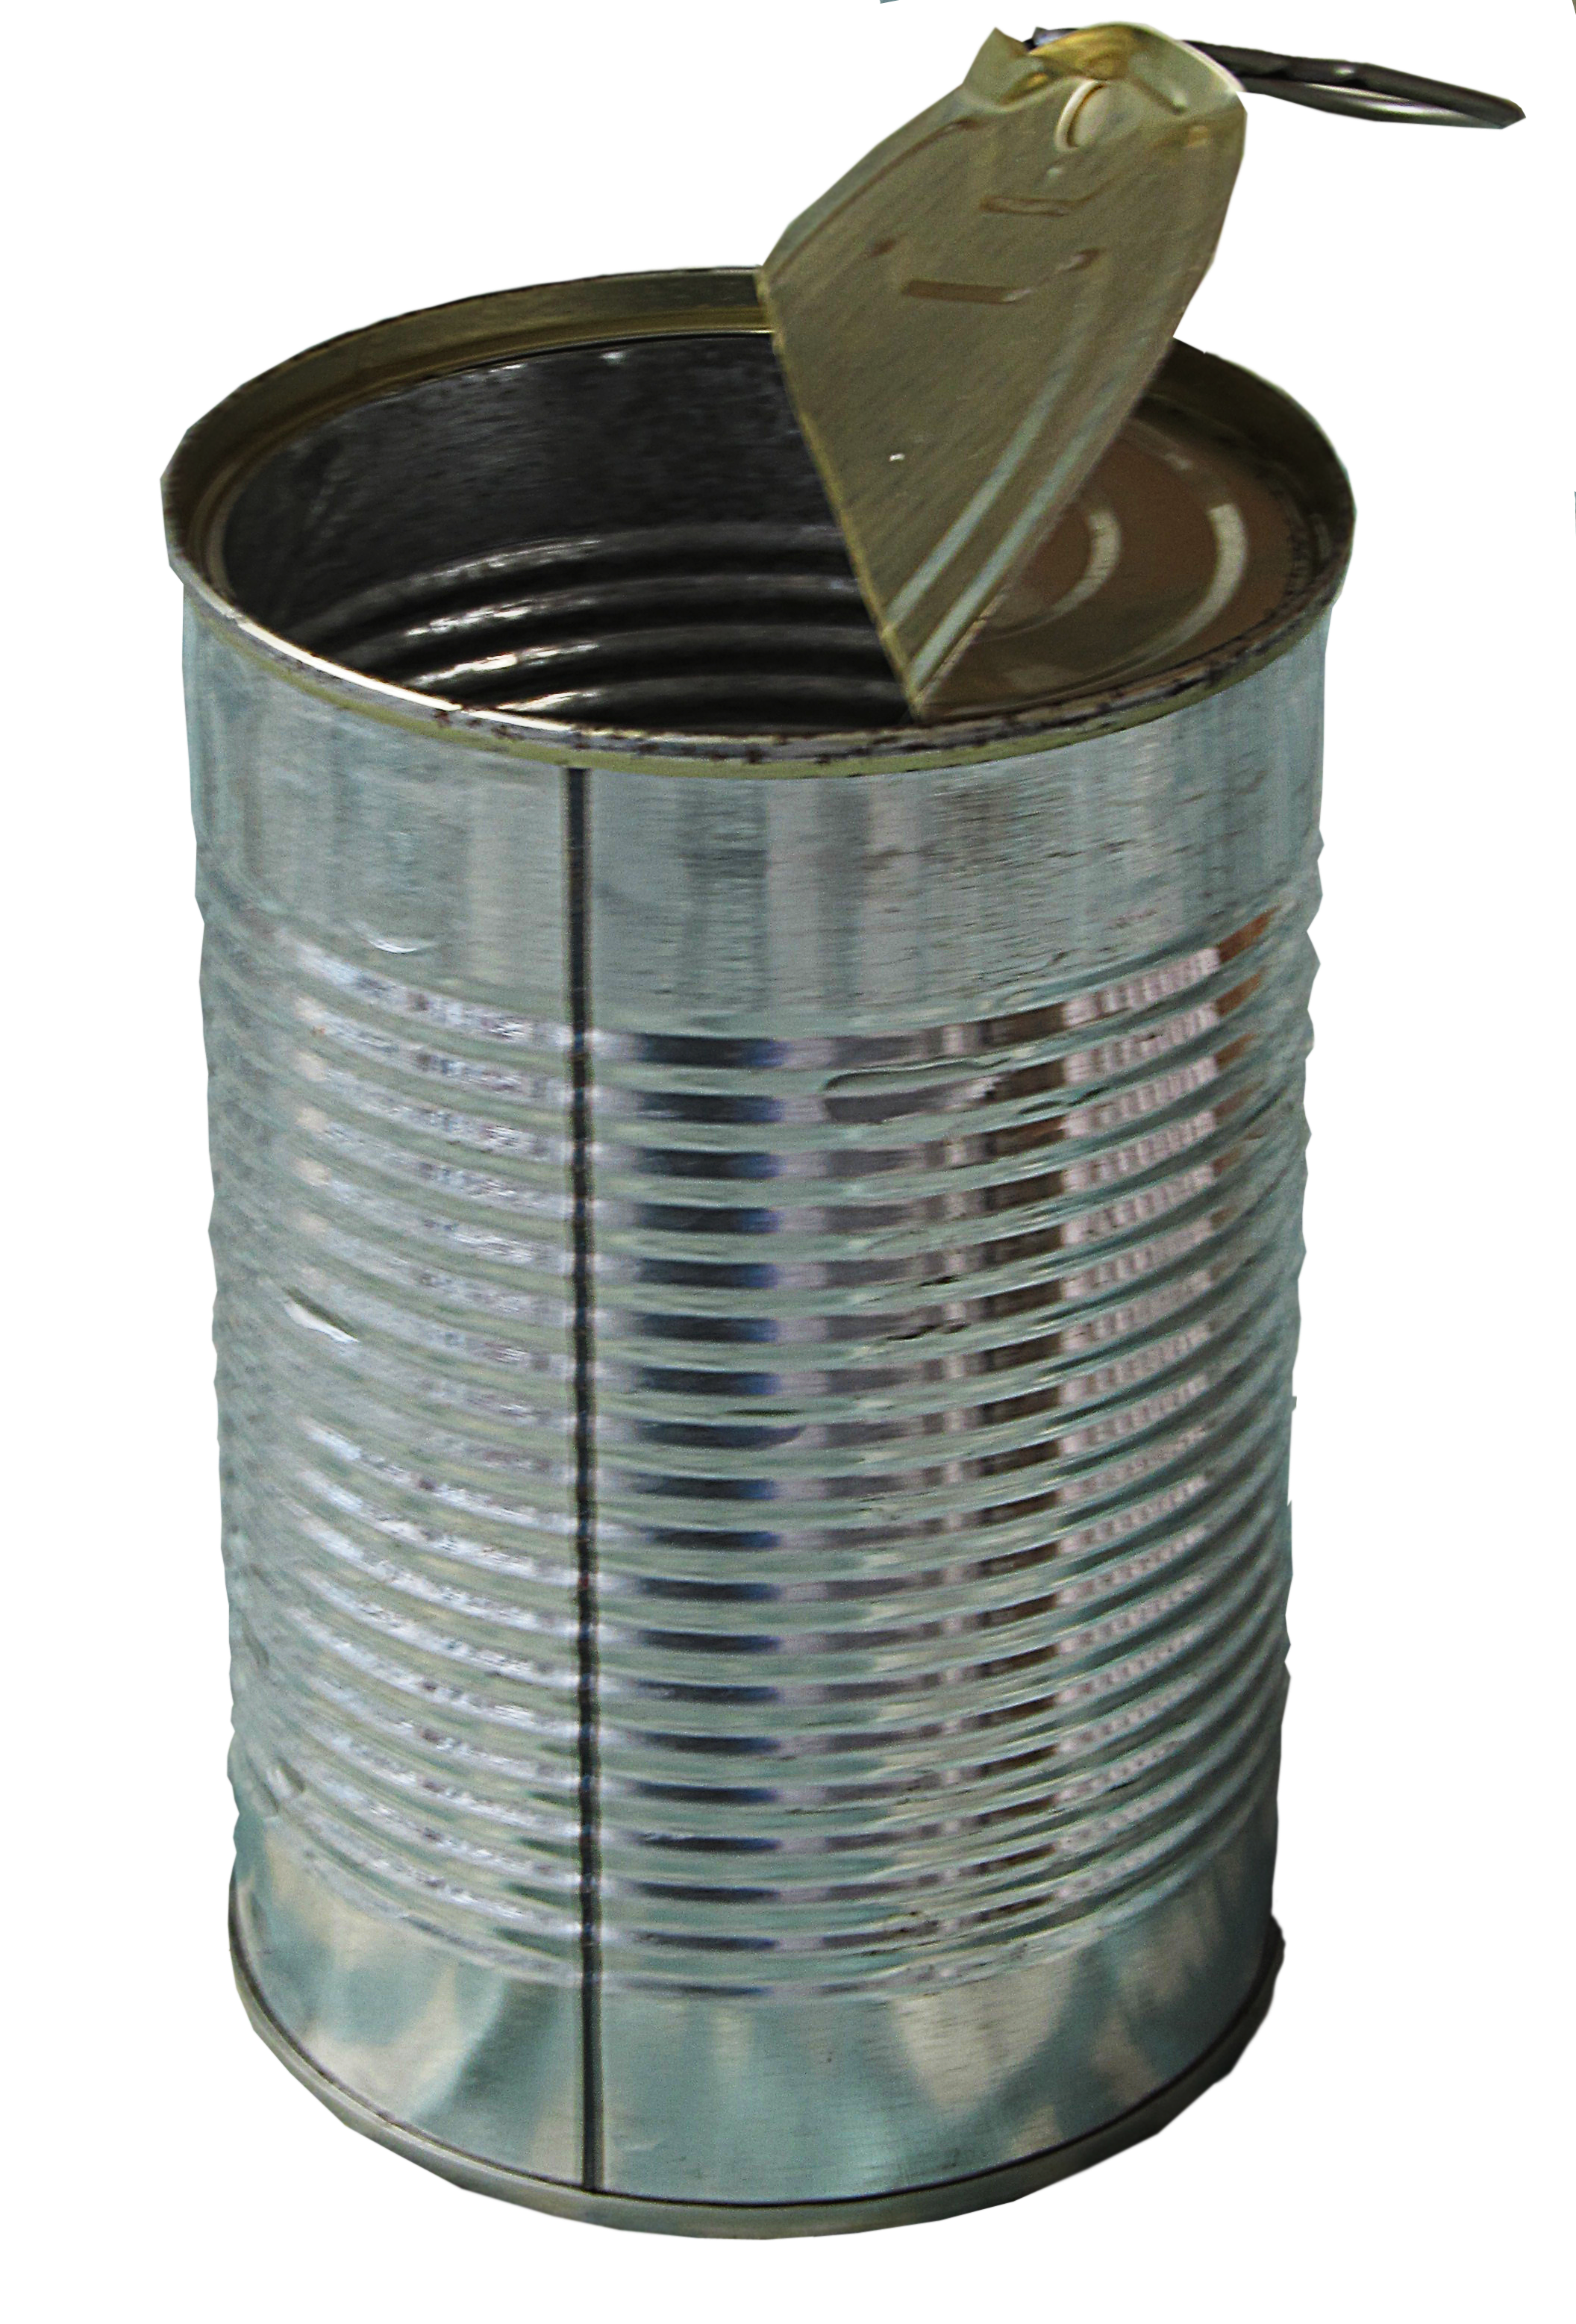 Tin can clipart clip free download Free Tin Can Cliparts, Download Free Clip Art, Free Clip Art ... clip free download